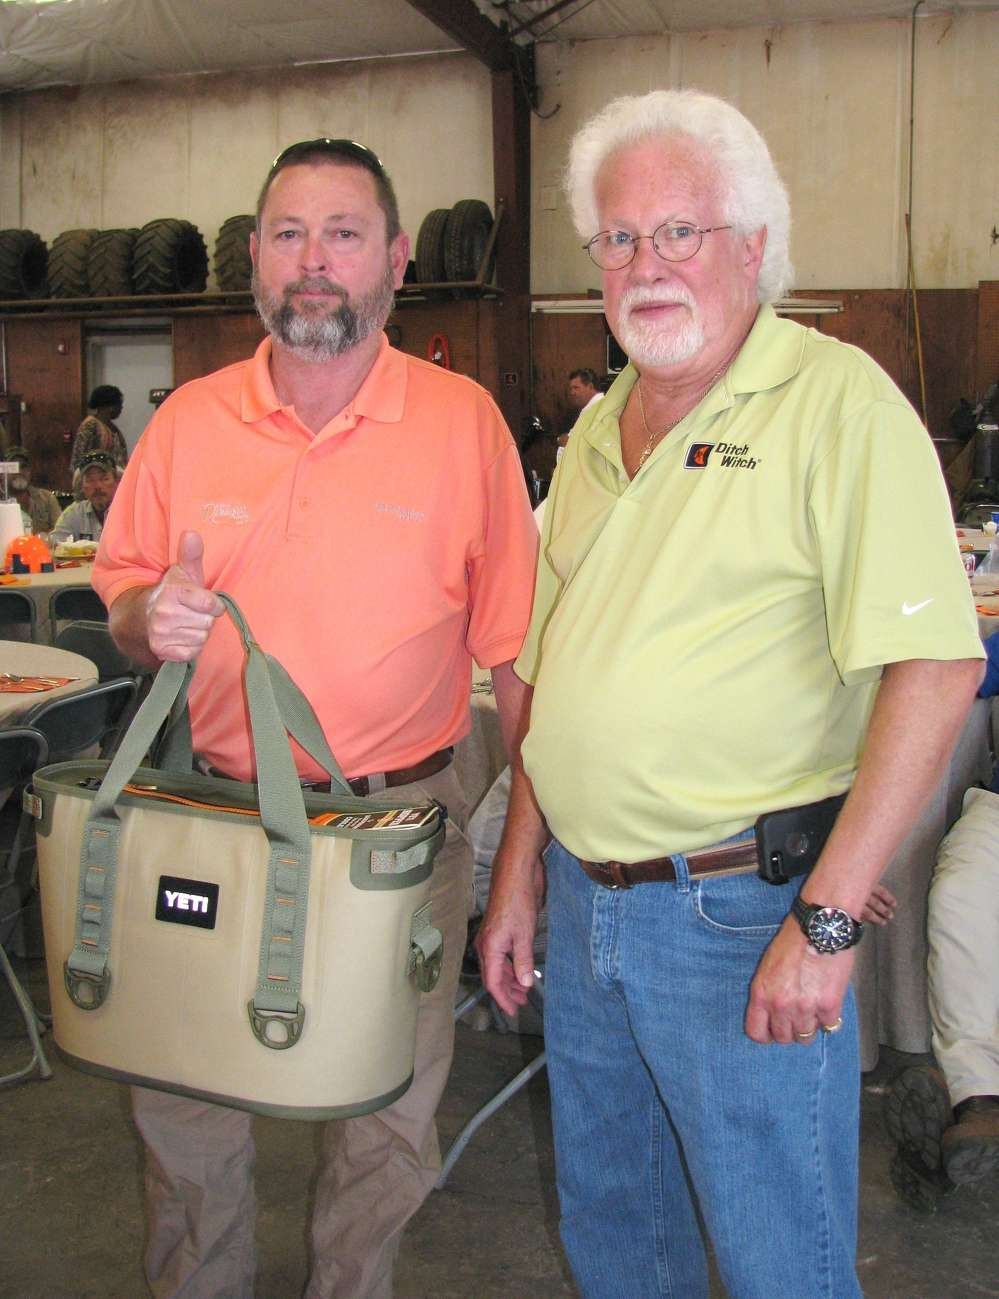 Marty Thornton (L) of the city of Douglas, Ga., stopped in for lunch and won a Yeti soft side cooler, which was presented to him by Ricky McCrary, Ditch Witch of Georgia, branch manager.